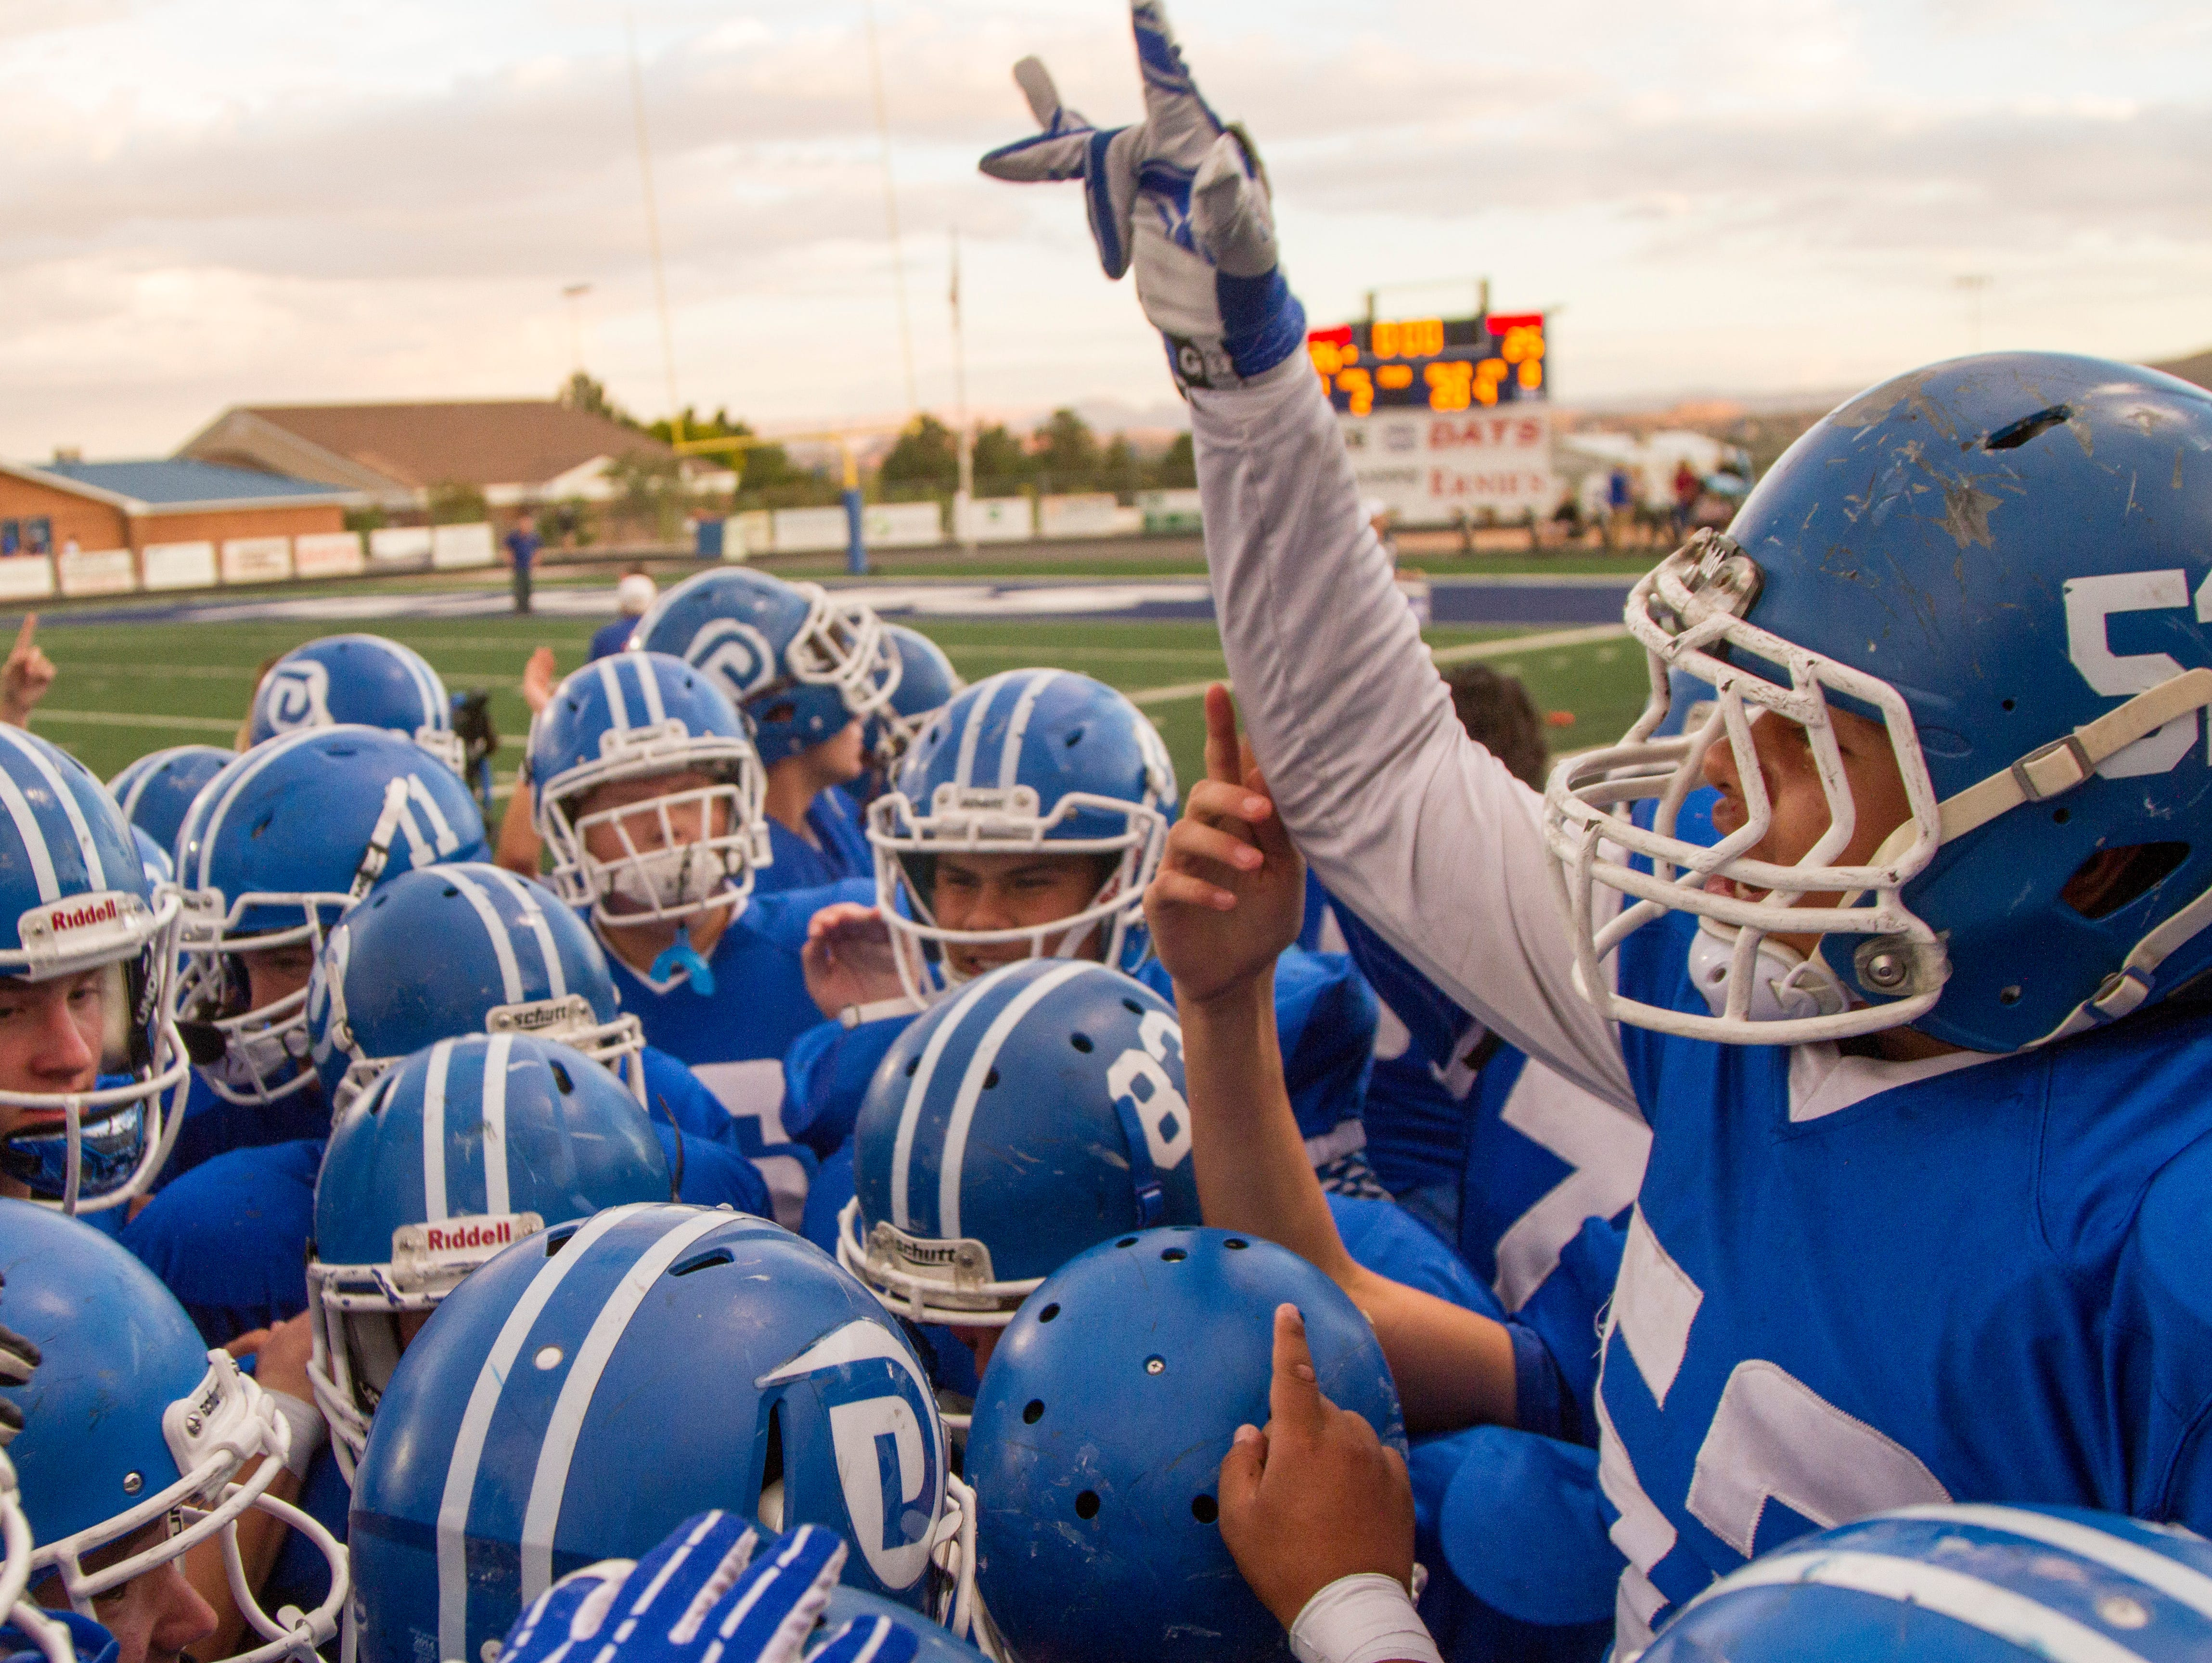 Dixie holds on to 26-25 lead for victory over Bear River Friday, Nov. 4, 2016.